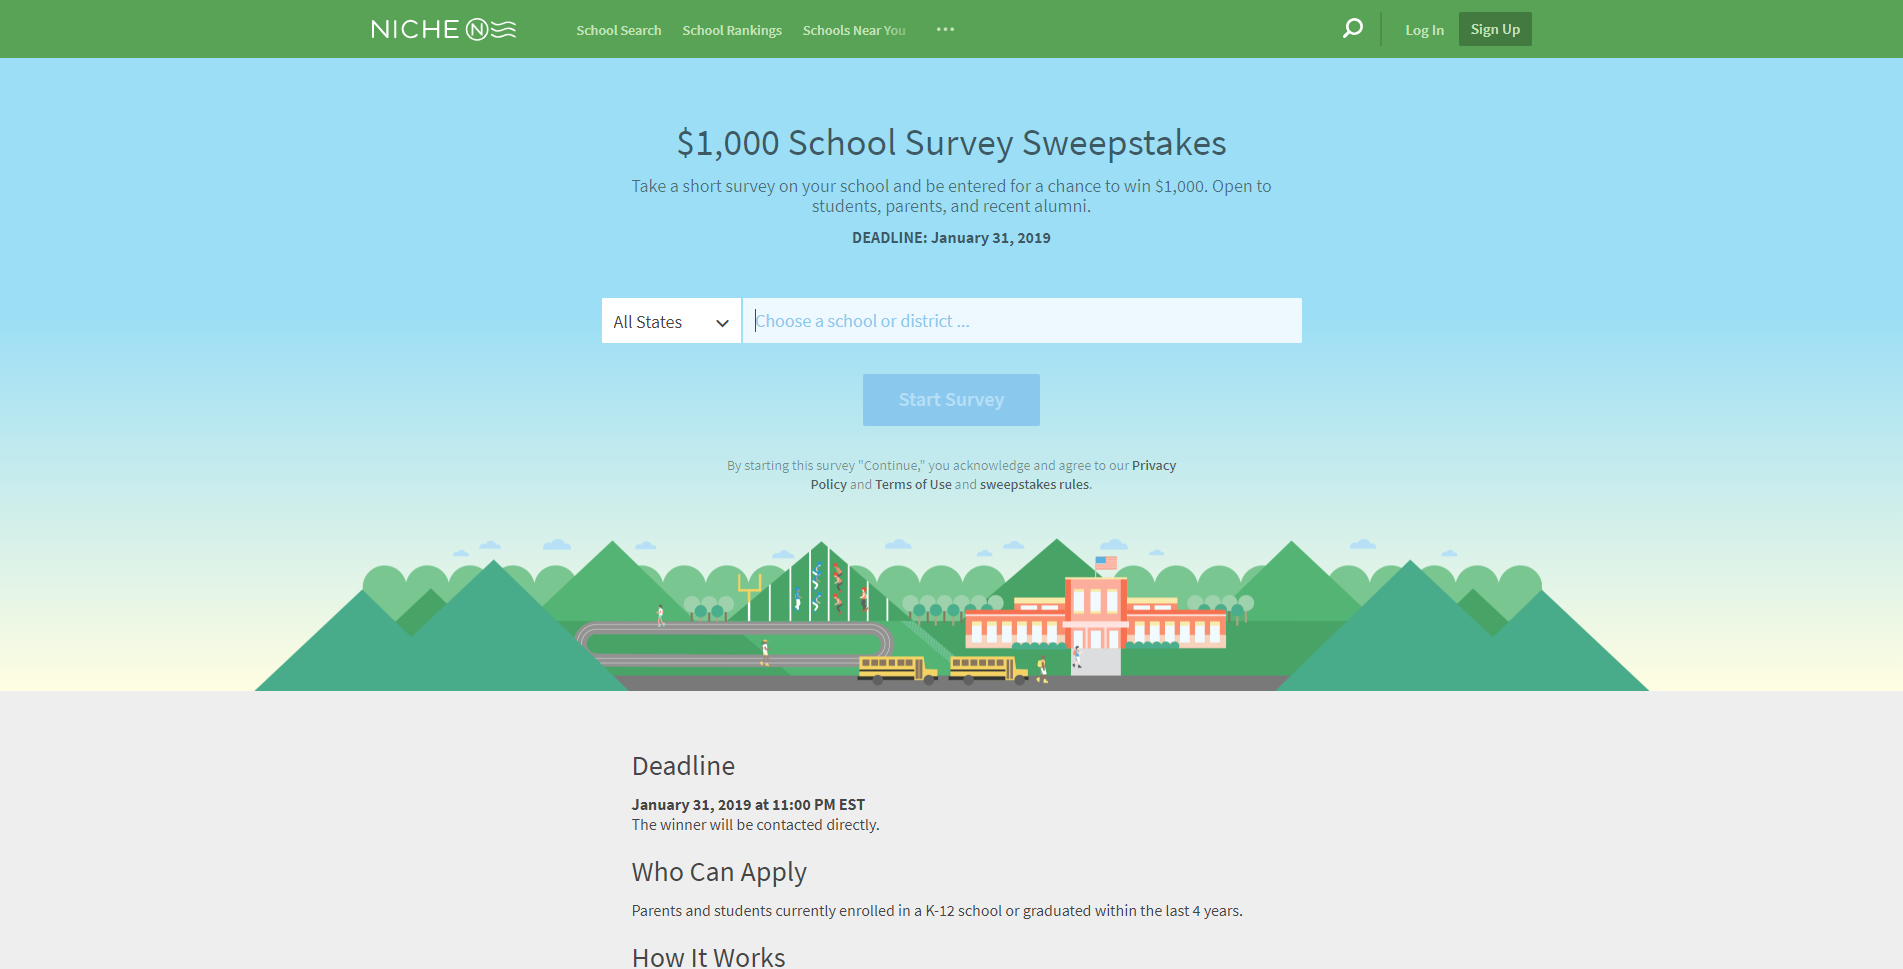 www.niche.com/k12/school-survey-sweepstakes/